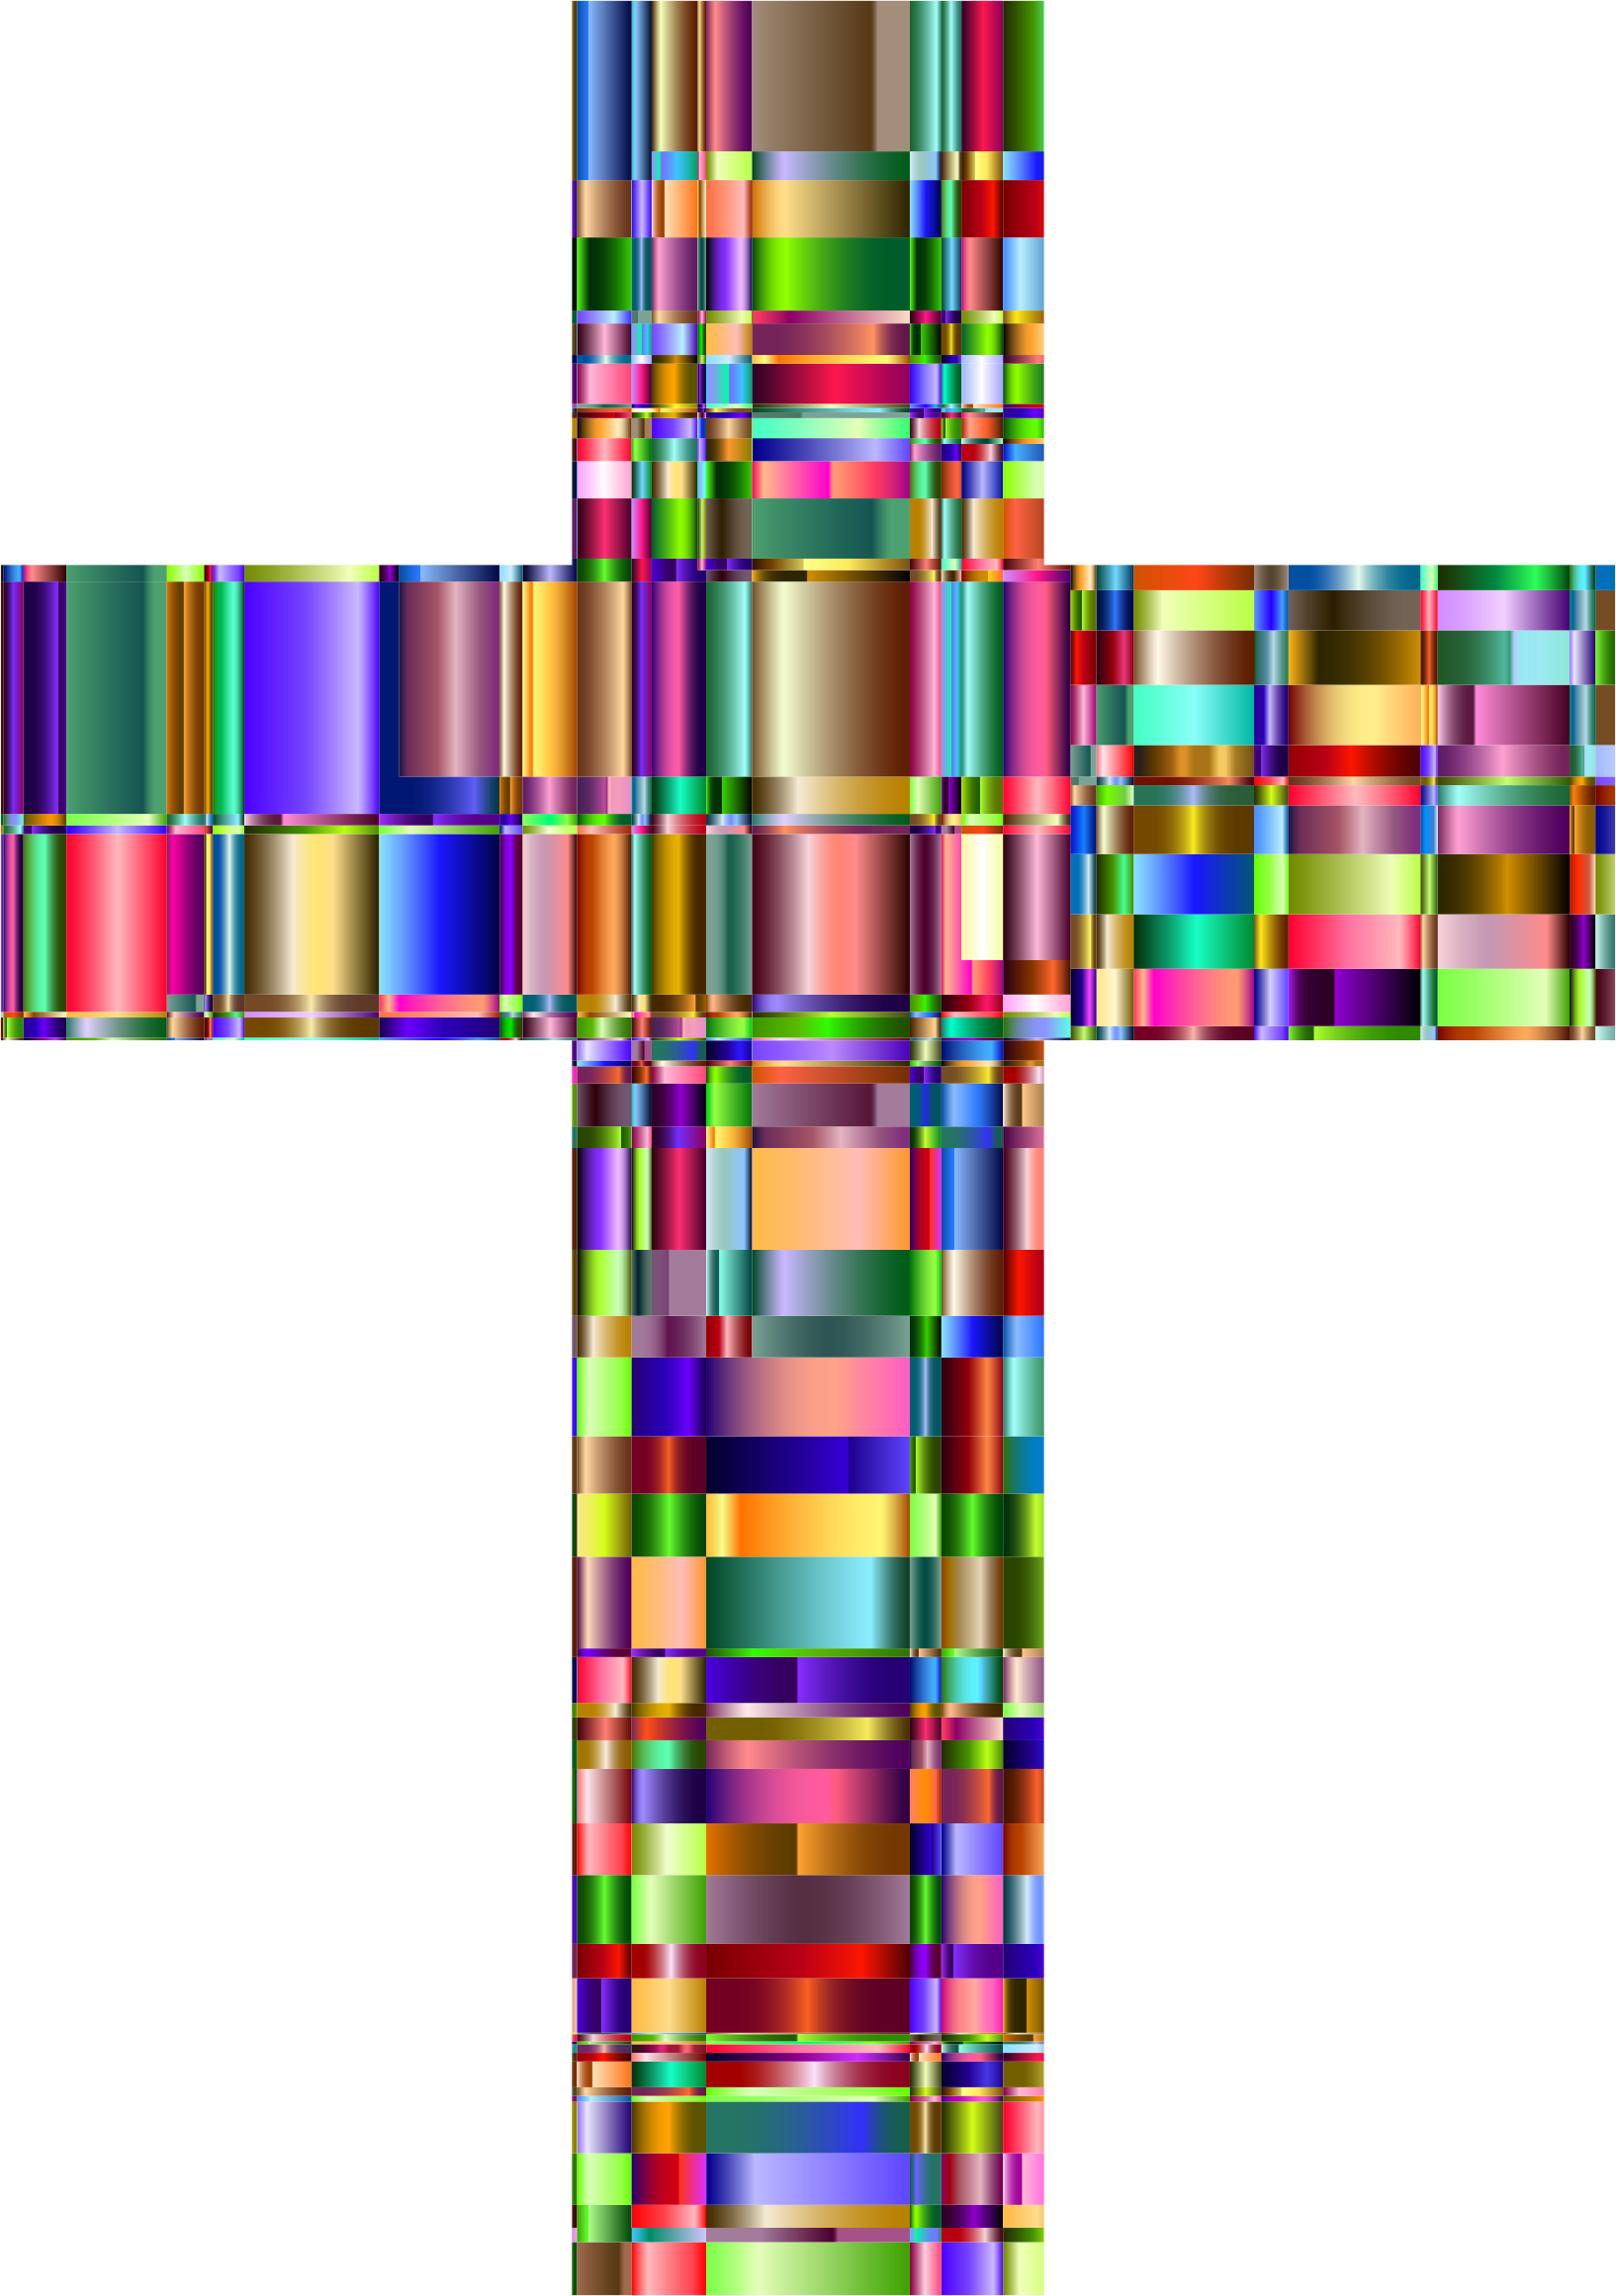 Checkered Chromatic Cross by GDJ